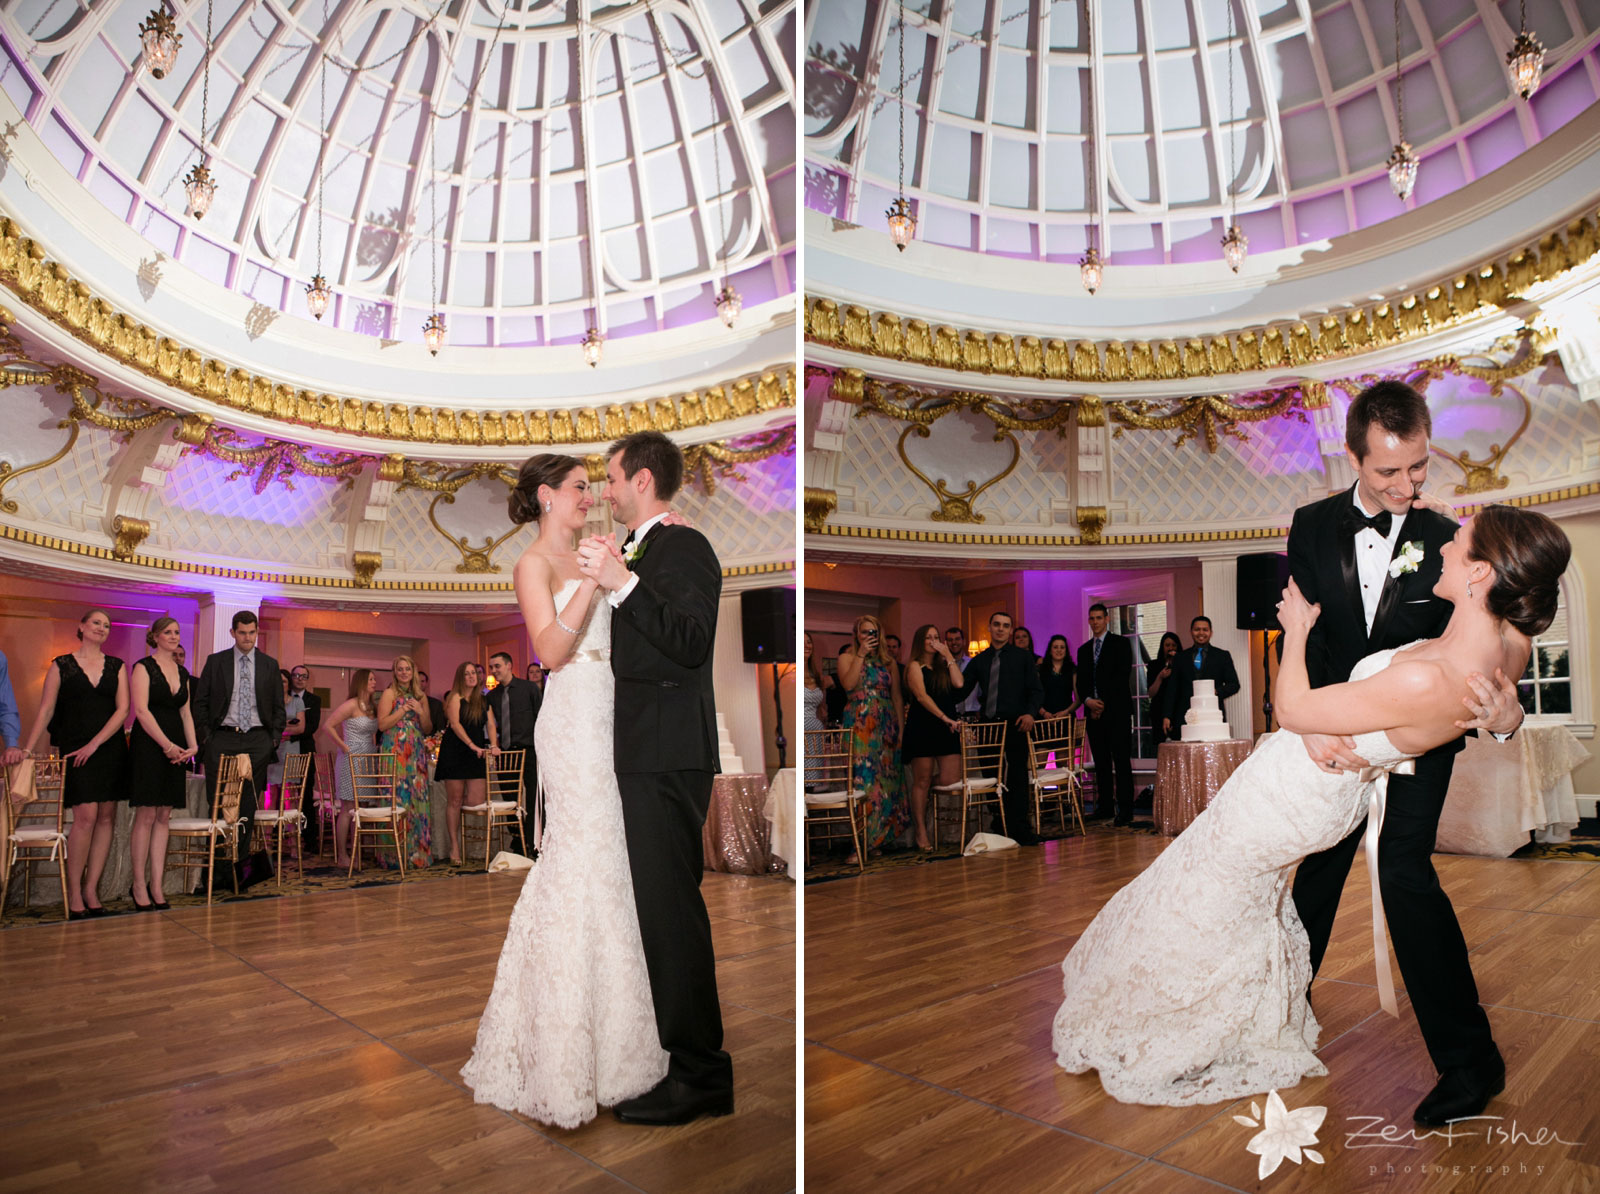 Bride and groom share their first dance at reception hall, groom holds and dips bride.